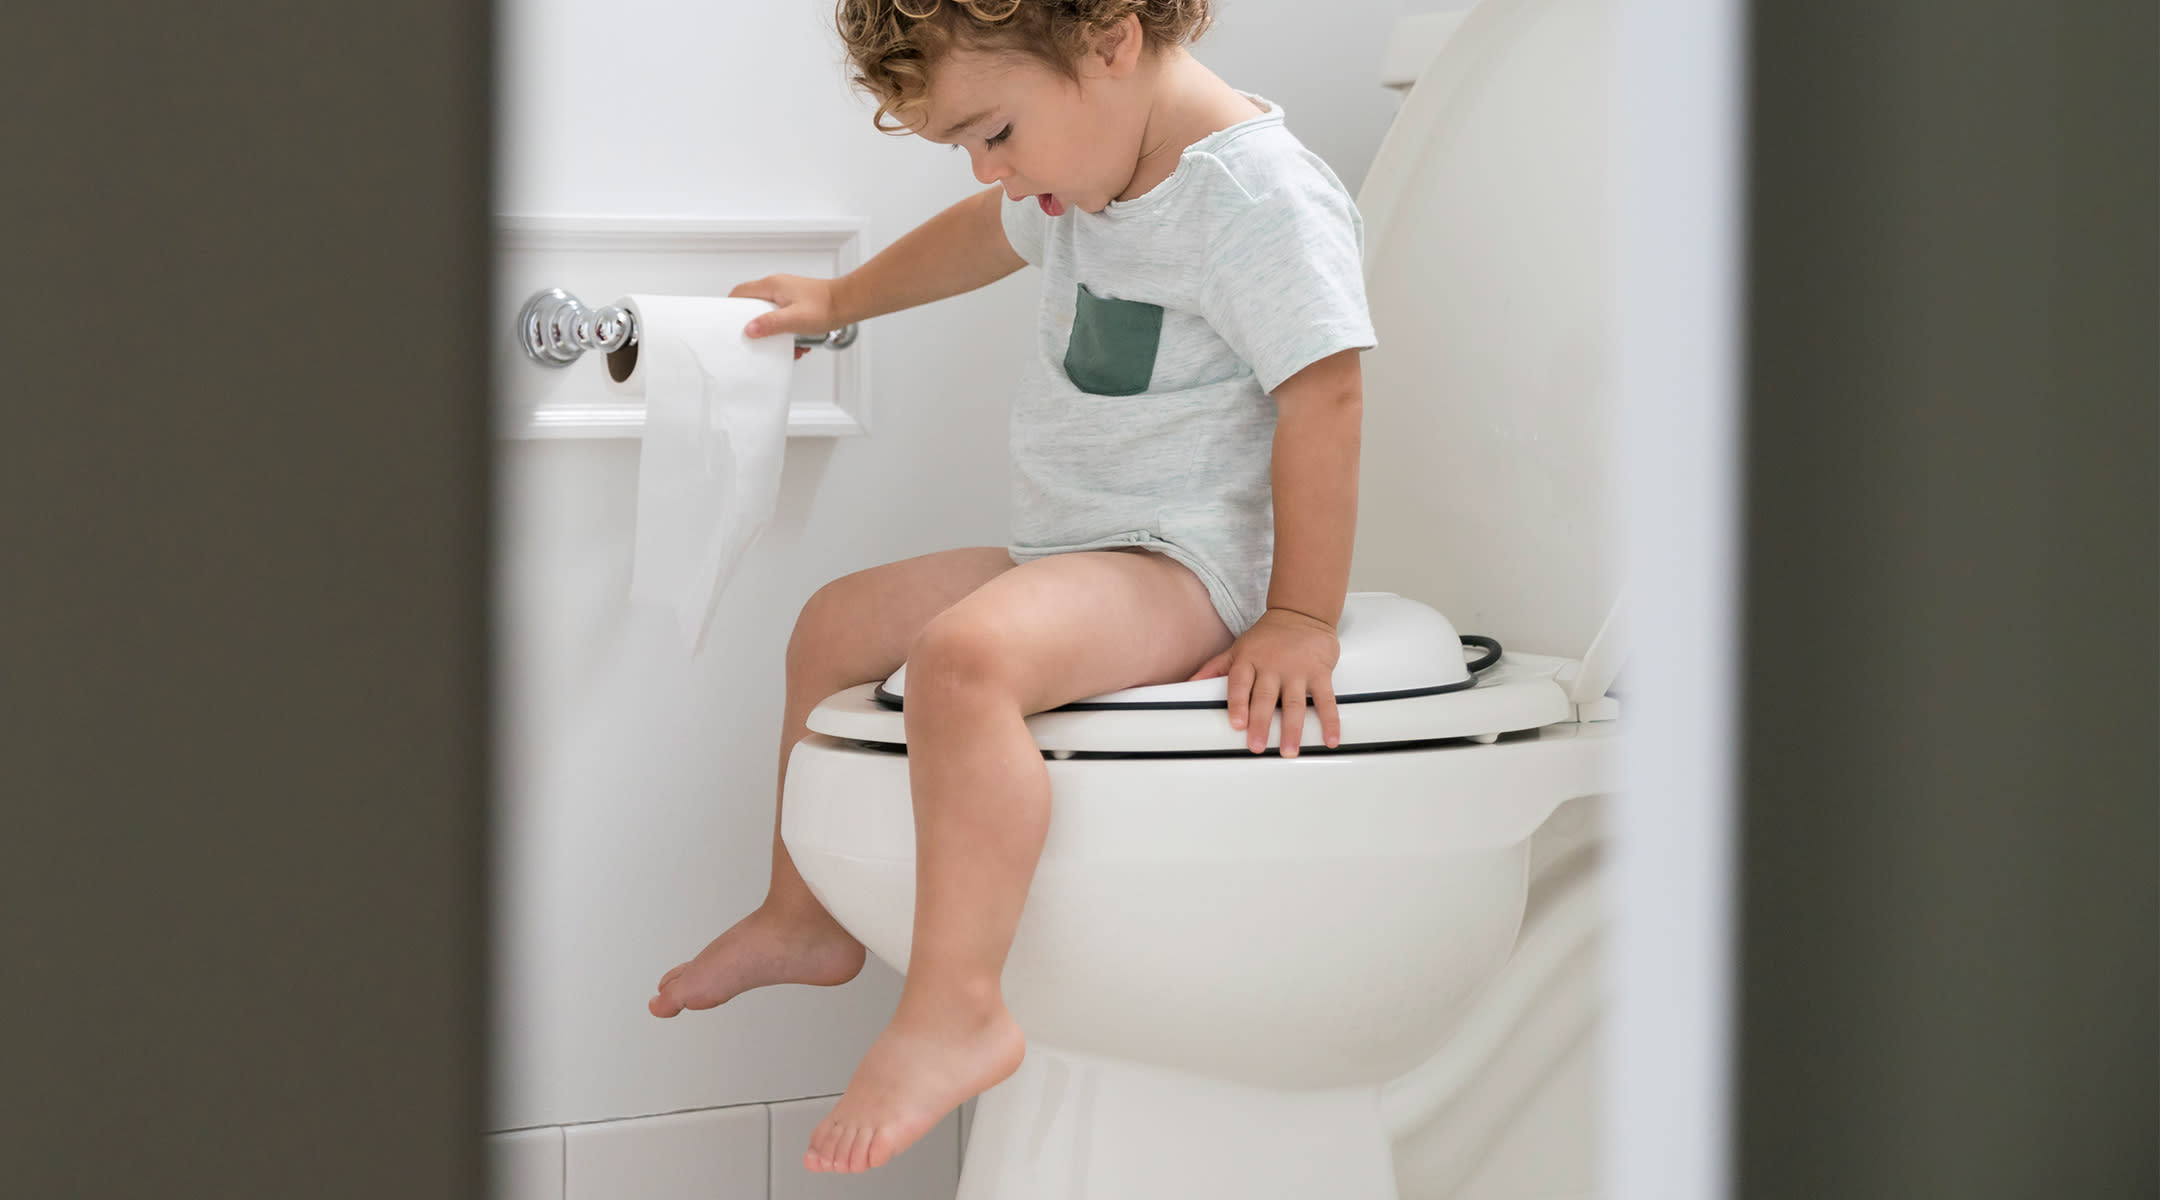 toddler doing potty training